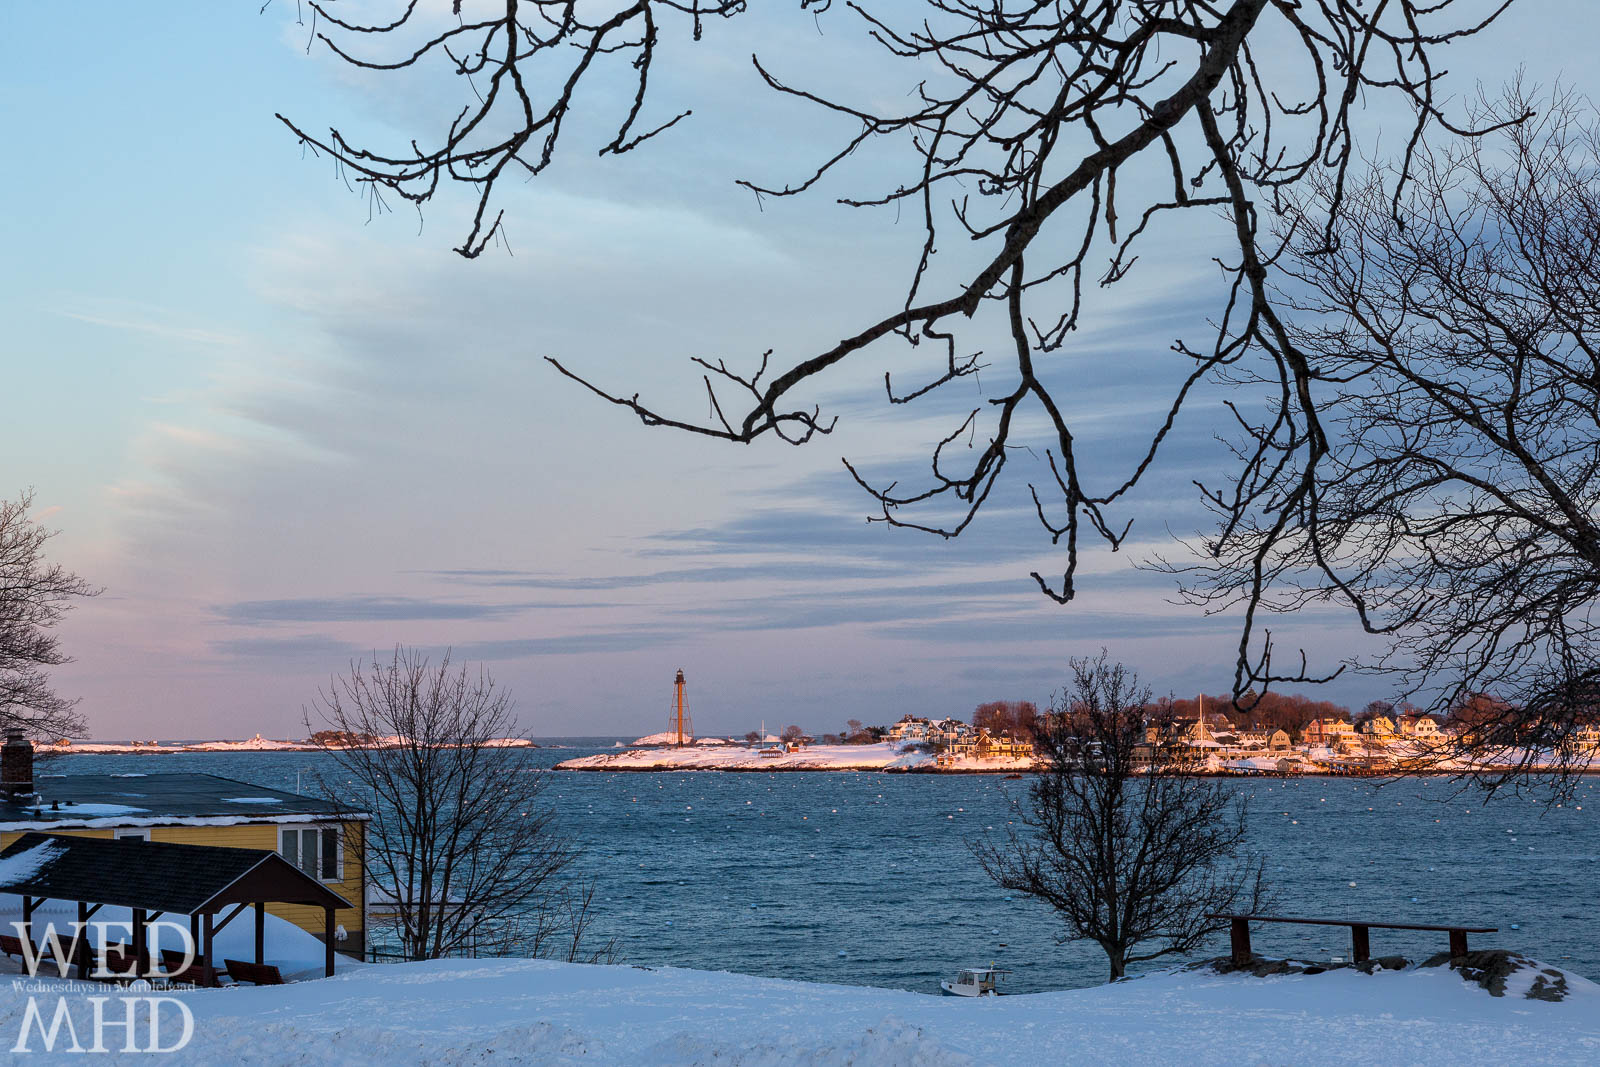 Golden light spreads over Marblehead Neck in this view from Crocker Park after the storm